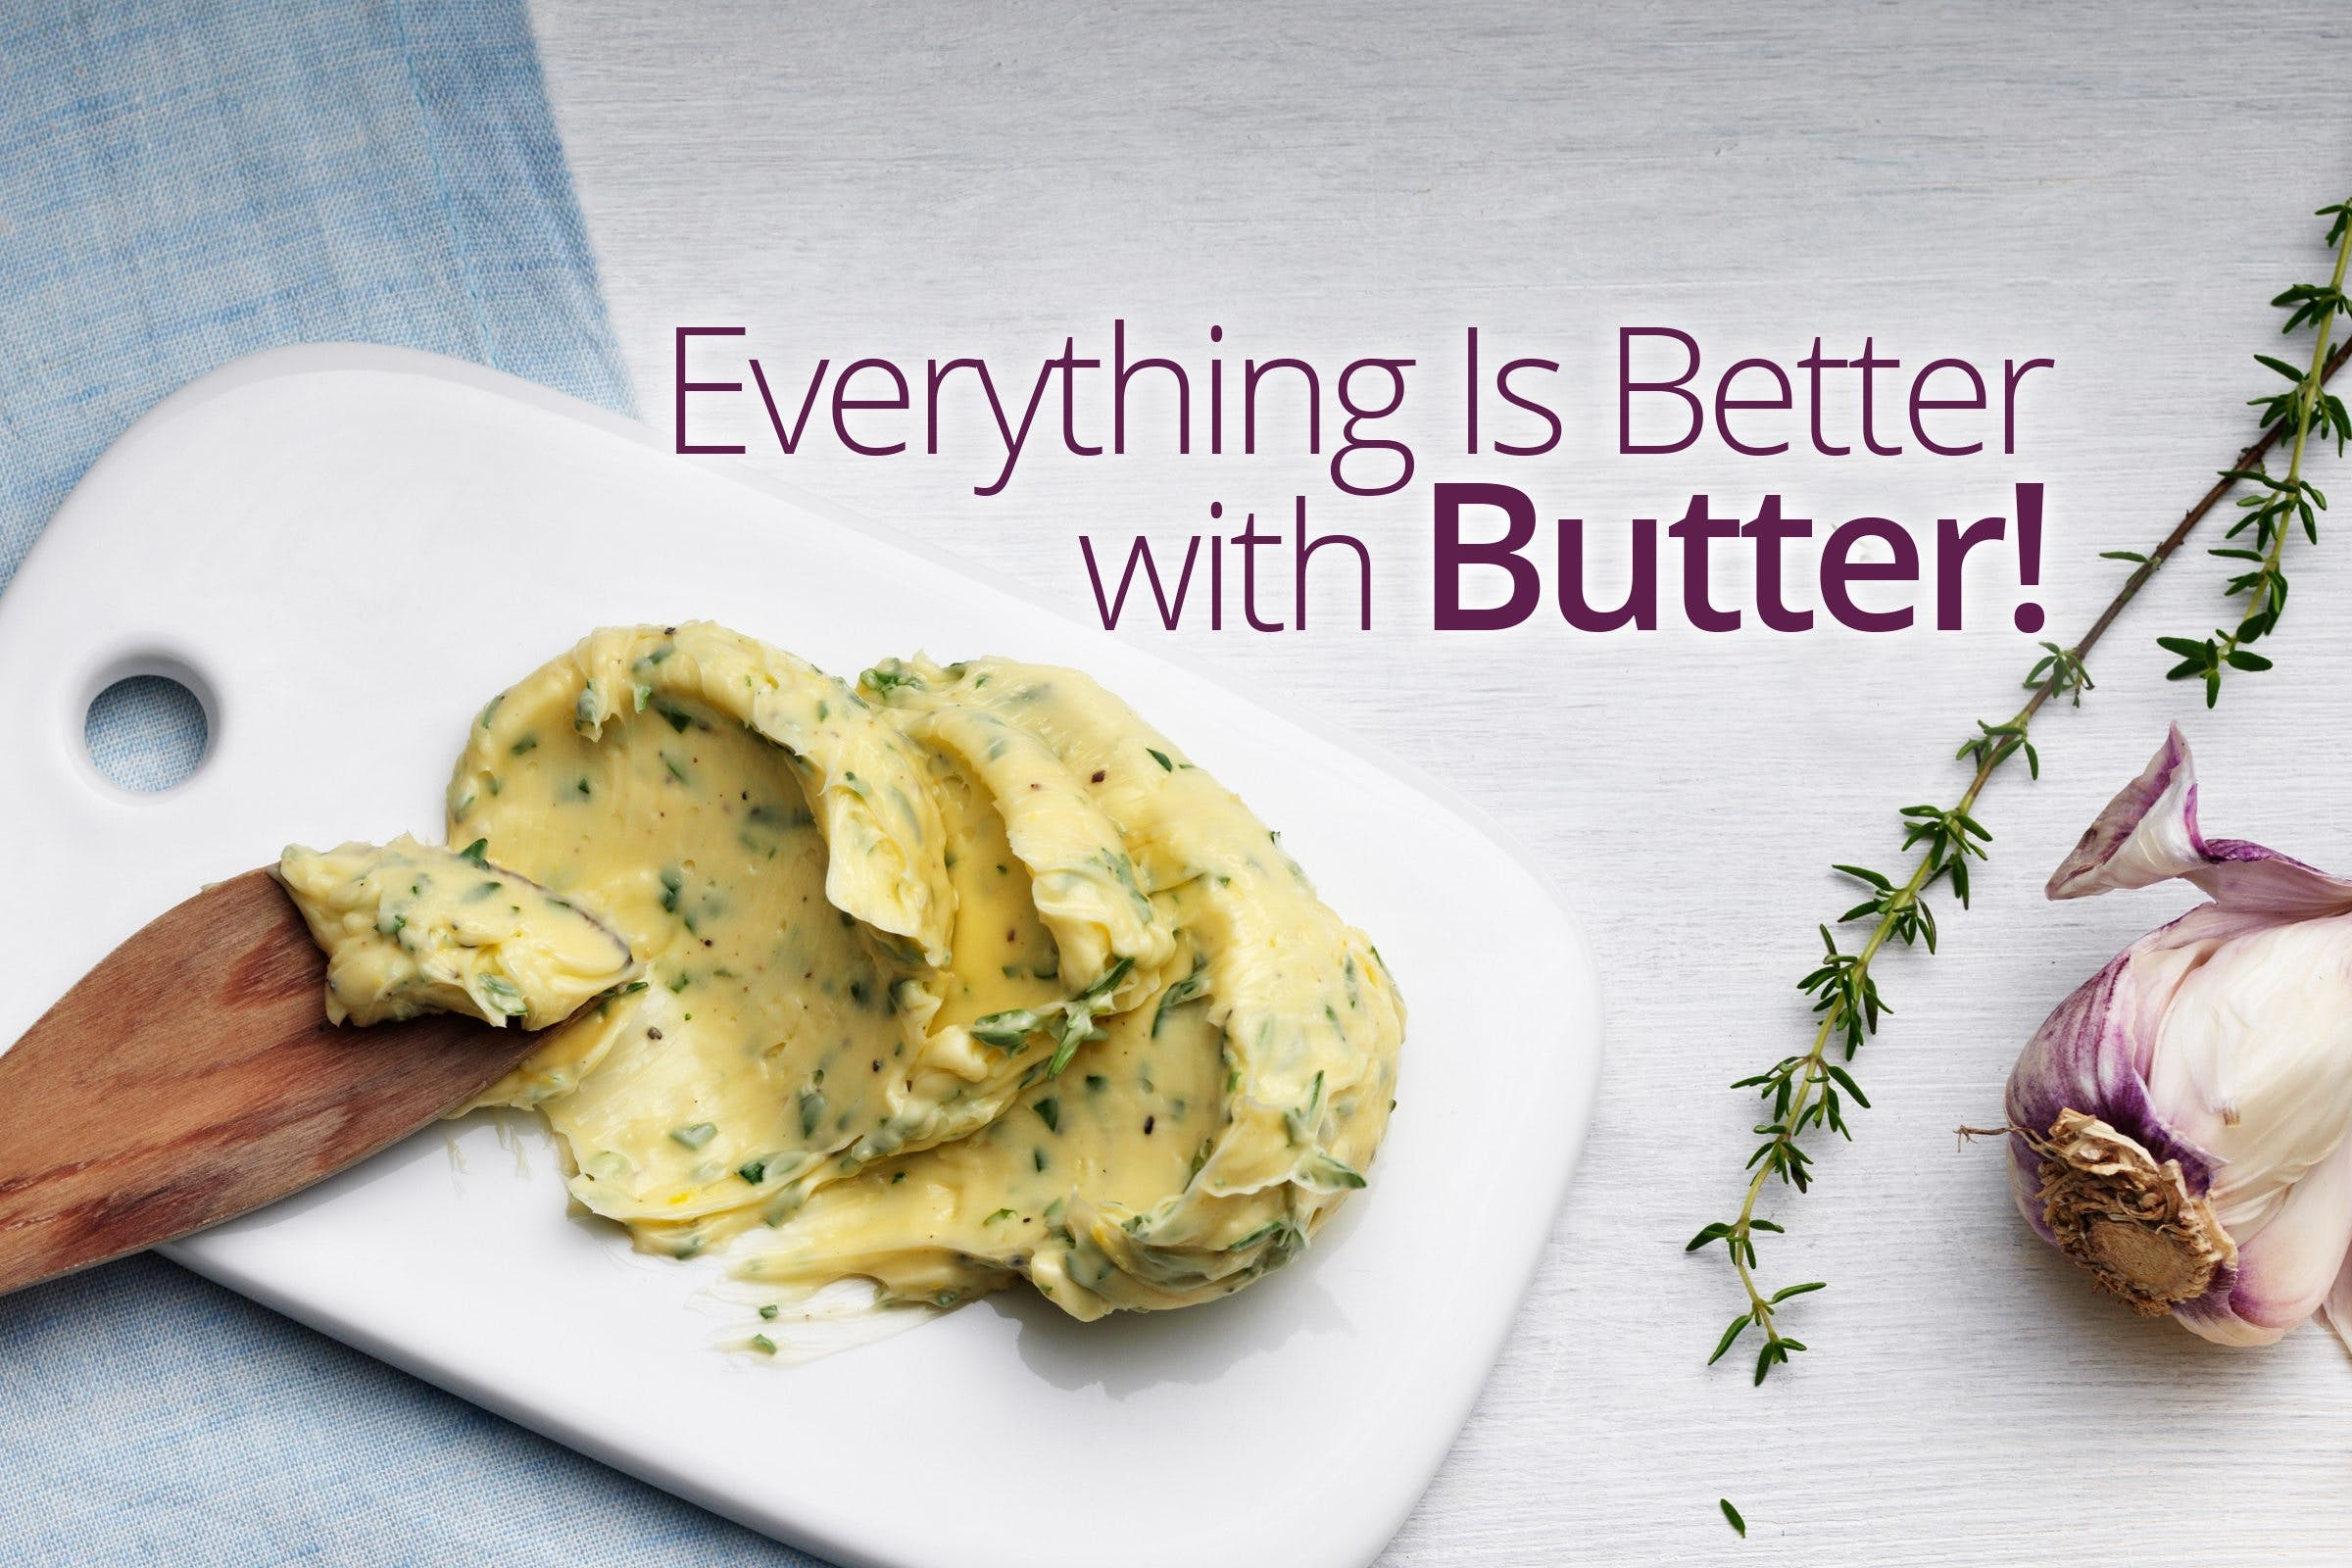 Everything Is Better with Butter!